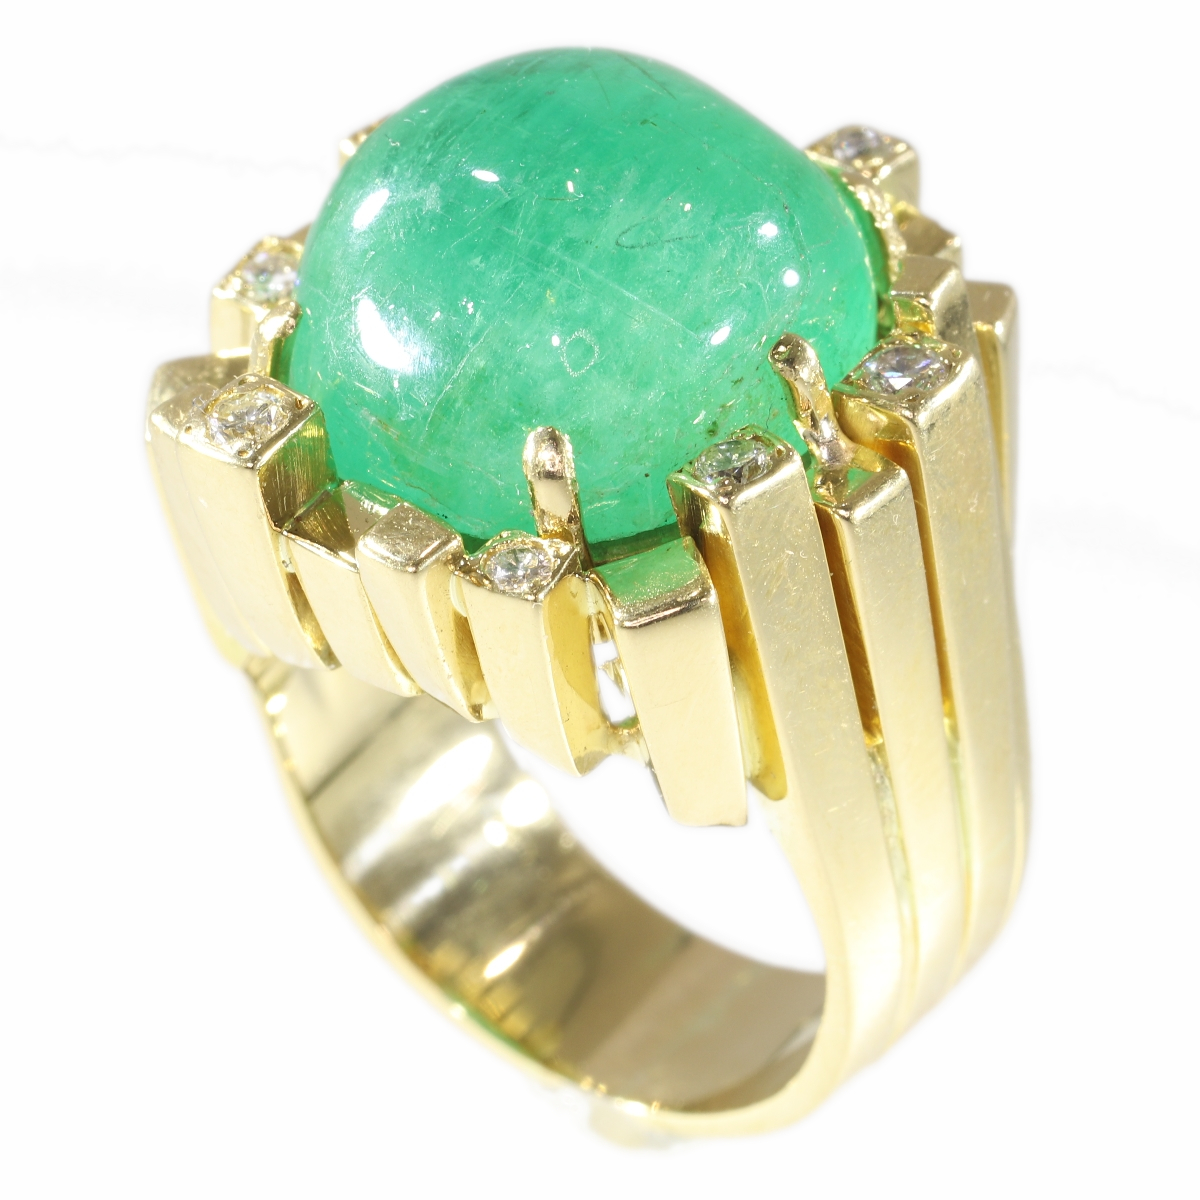 Vintage Seventies Modernistic Artist Design ring with large emerald and diamonds